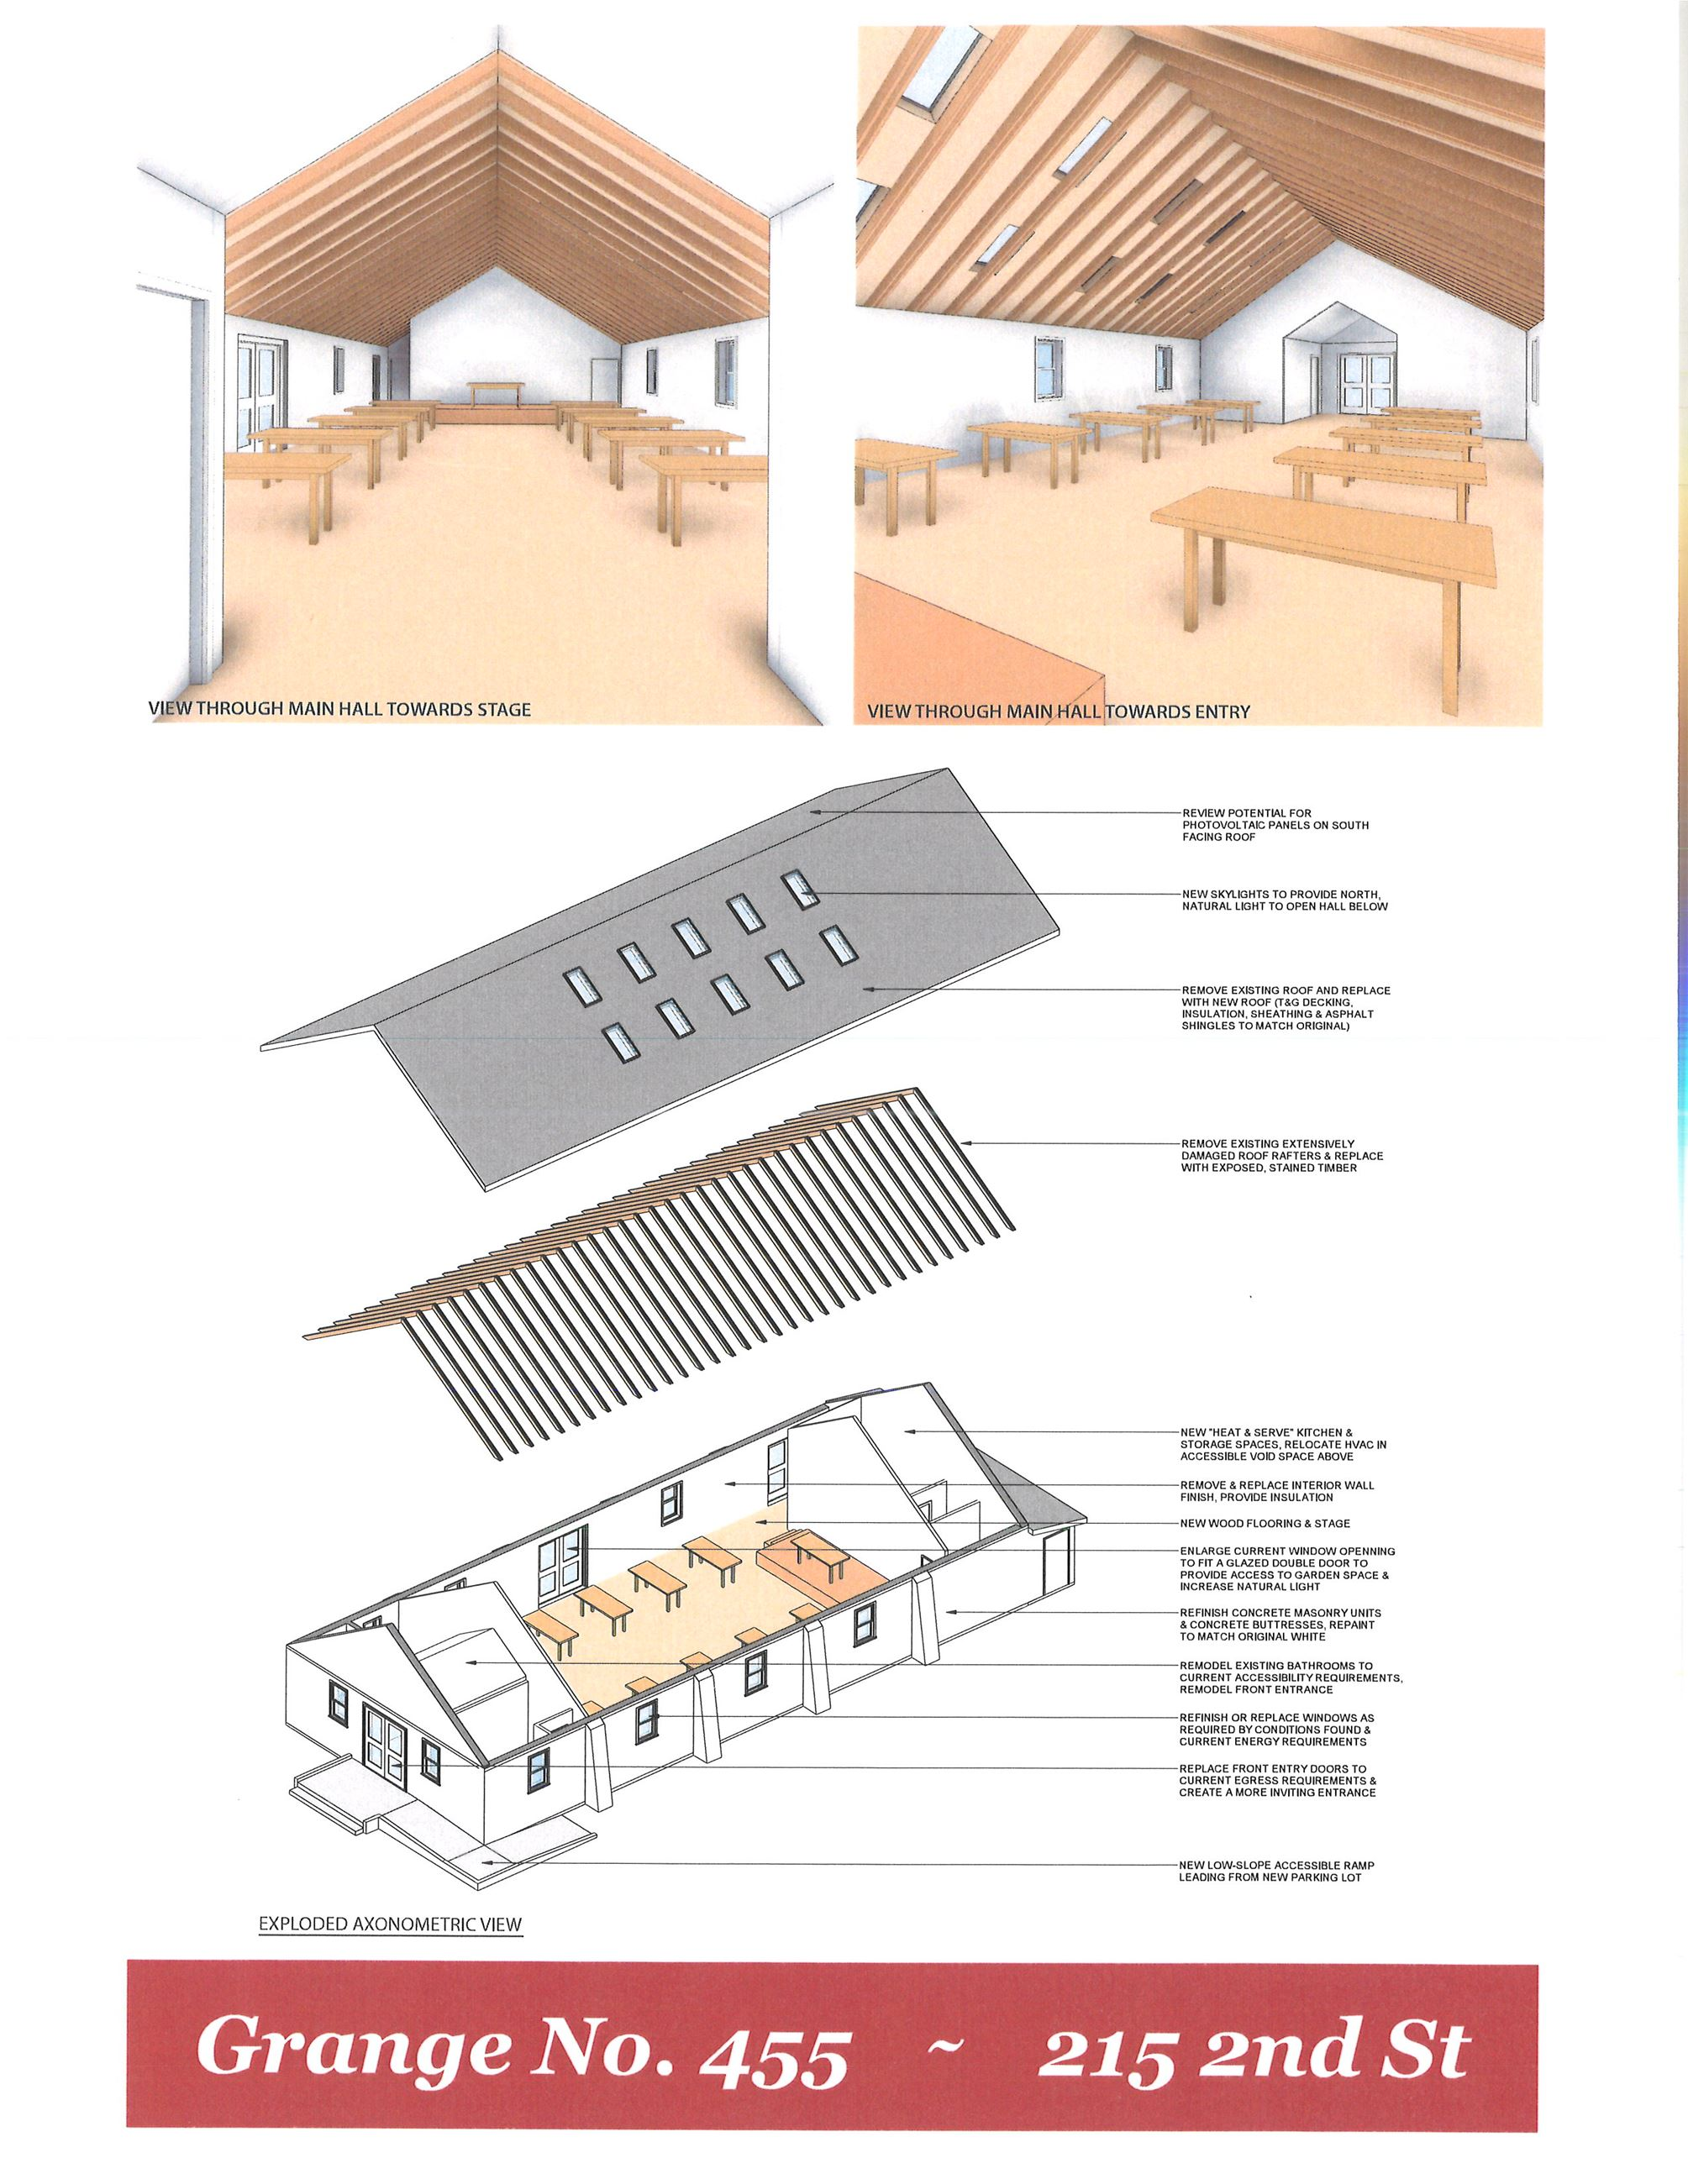 ARCHITECTURAL CONCEPTUAL RENDERINGS OF THE KERSEY COMMUNITY CENTER AT THE GRANGE